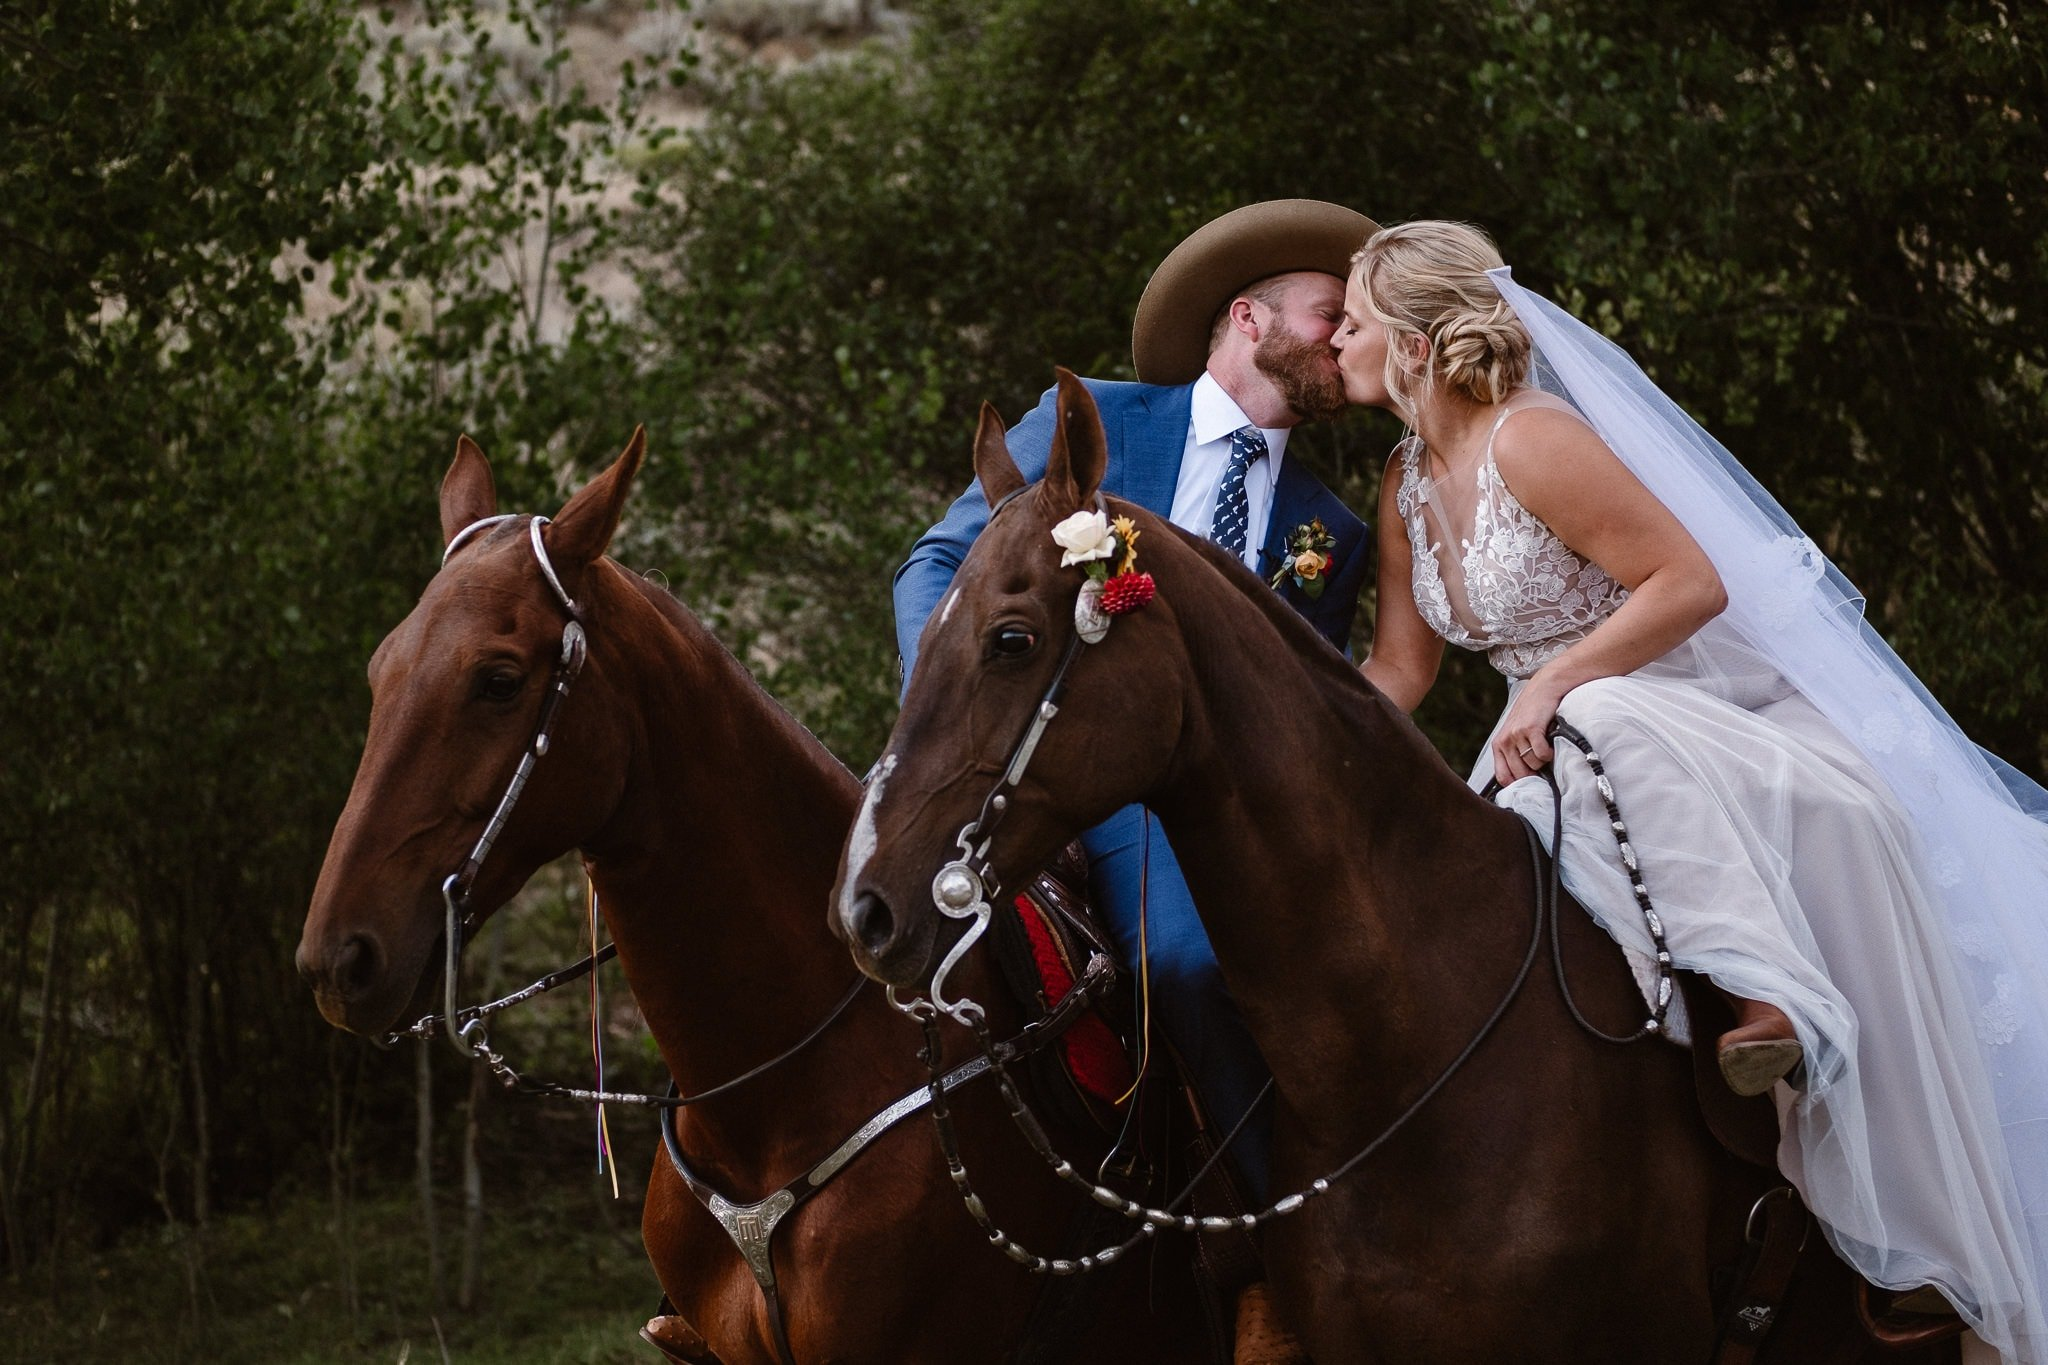 Steamboat Springs wedding photographer, La Joya Dulce wedding, Colorado ranch wedding venues, outdoor wedding ceremony, Colorado wedding, Rocky Mountain wedding, ranch wedding, bride and groom riding horses